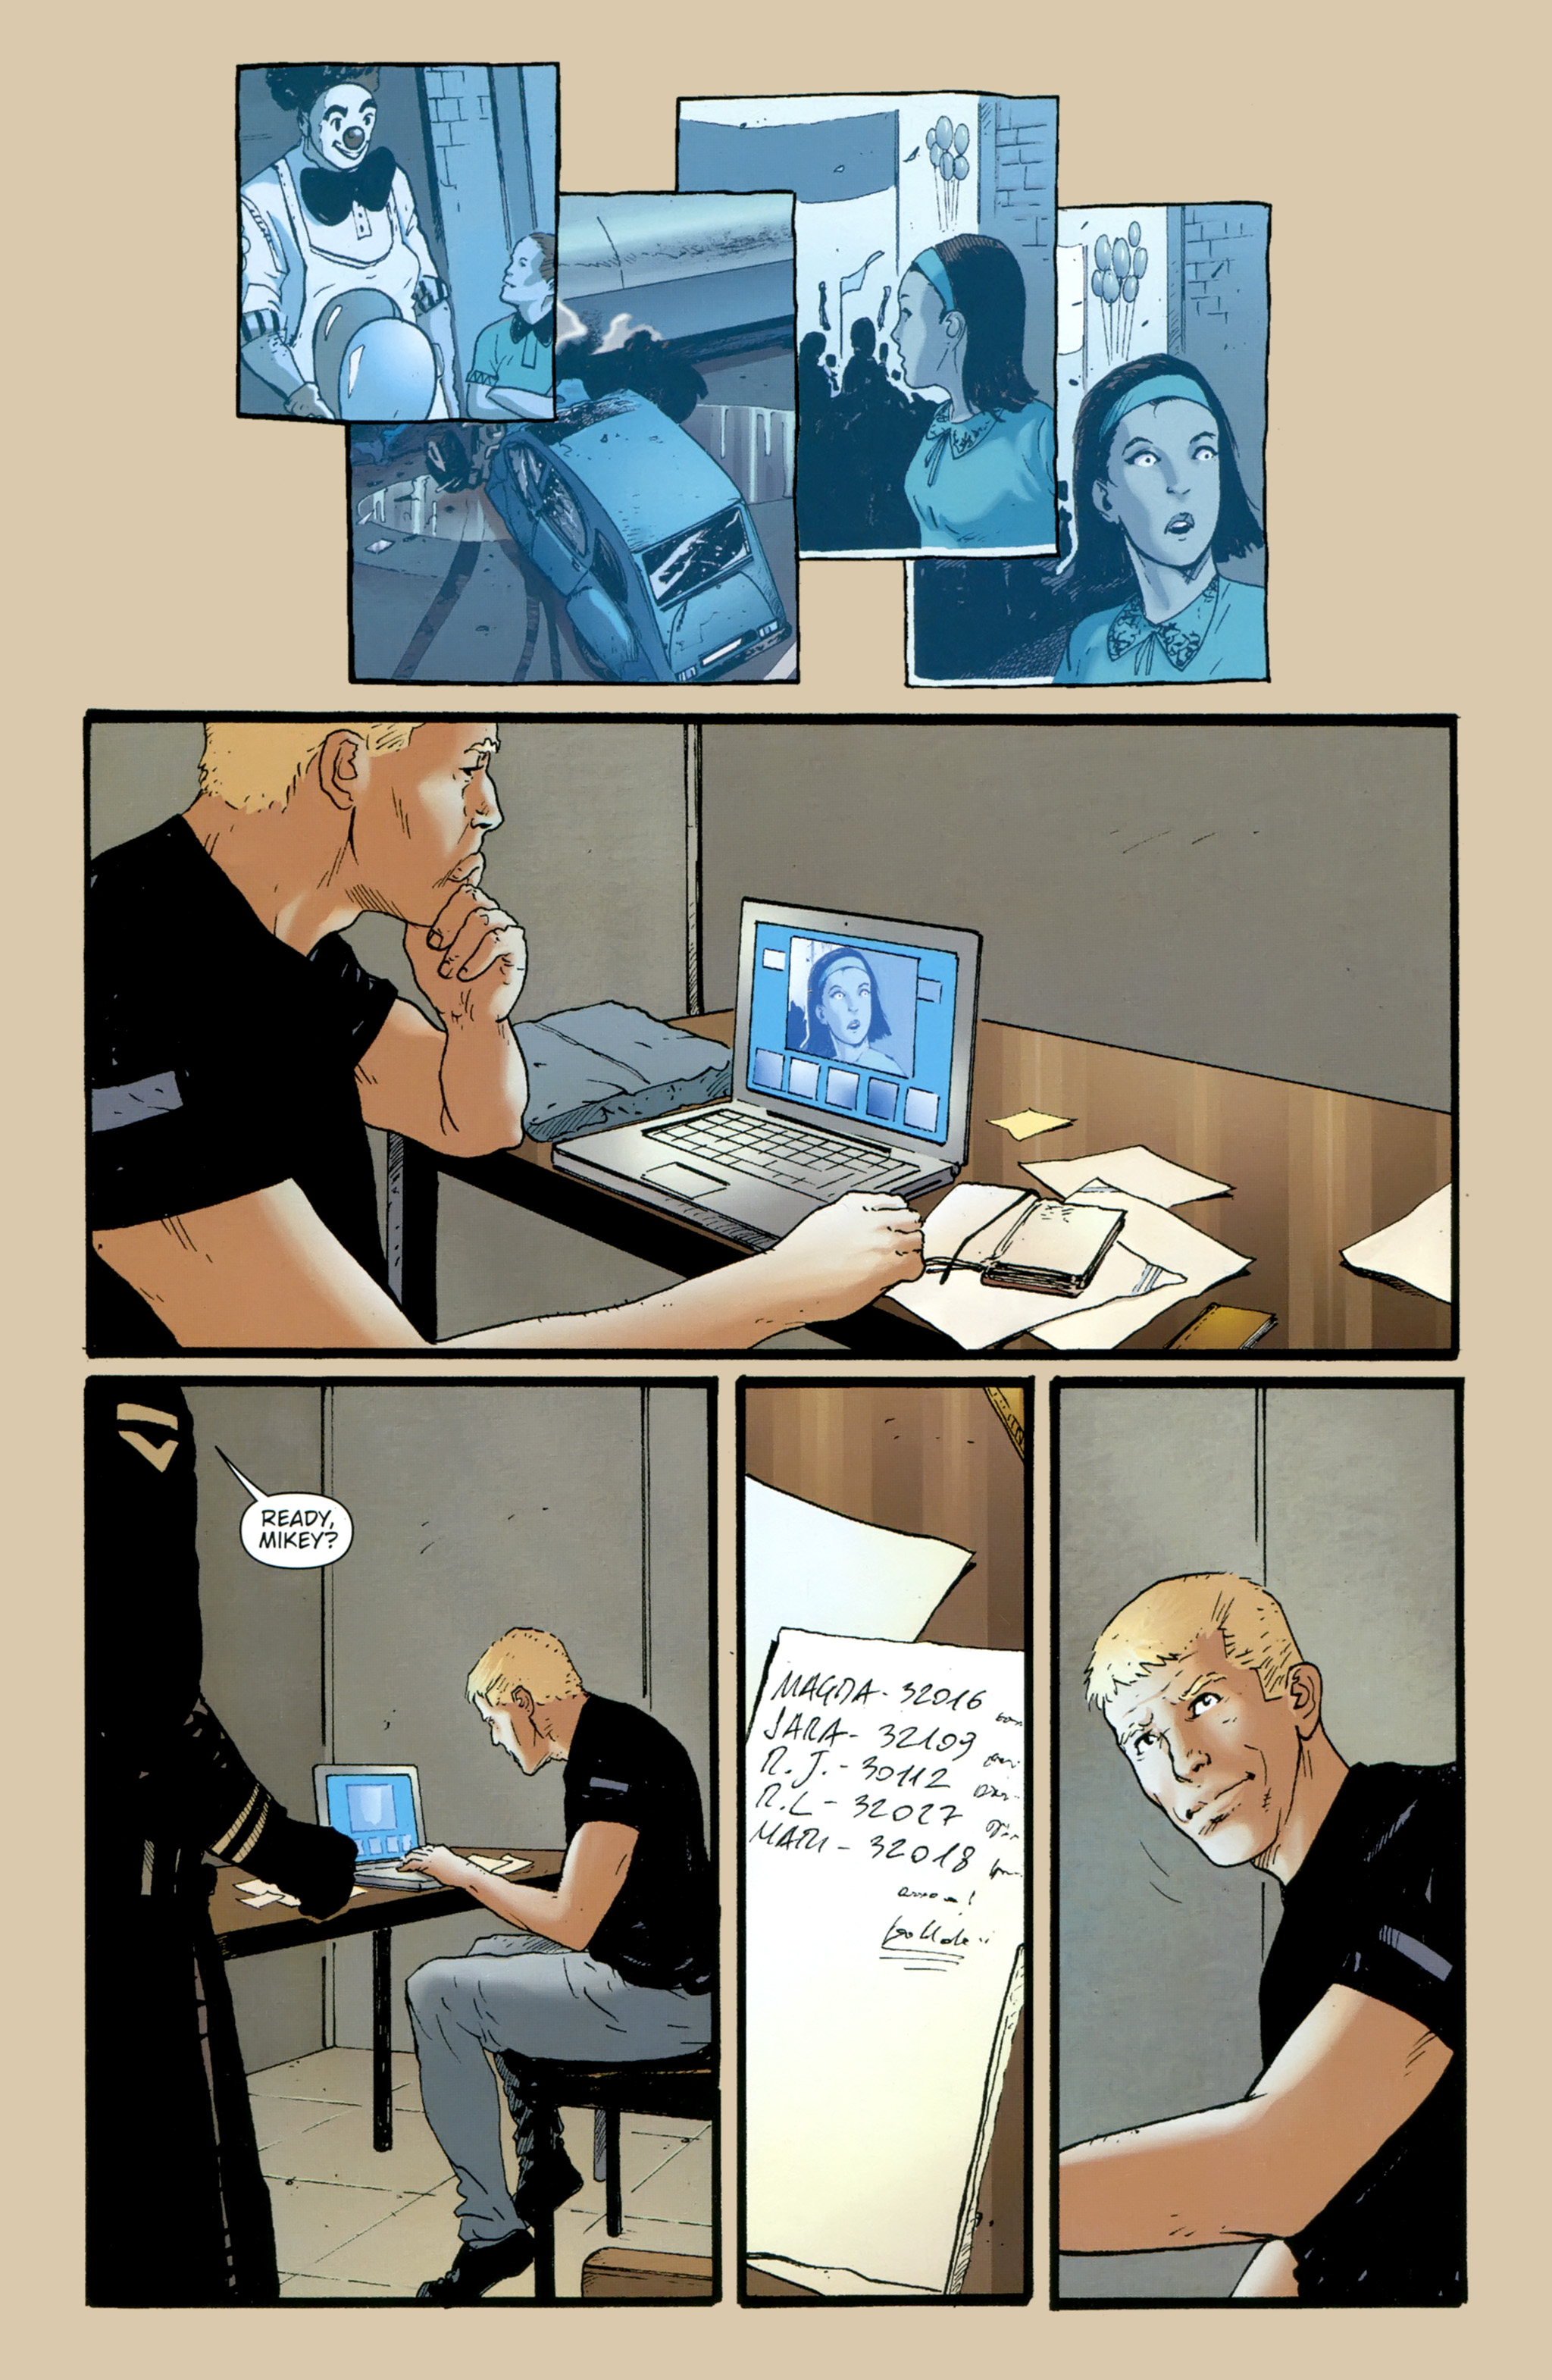 Read online The Girl With the Dragon Tattoo comic -  Issue # TPB 2 - 10